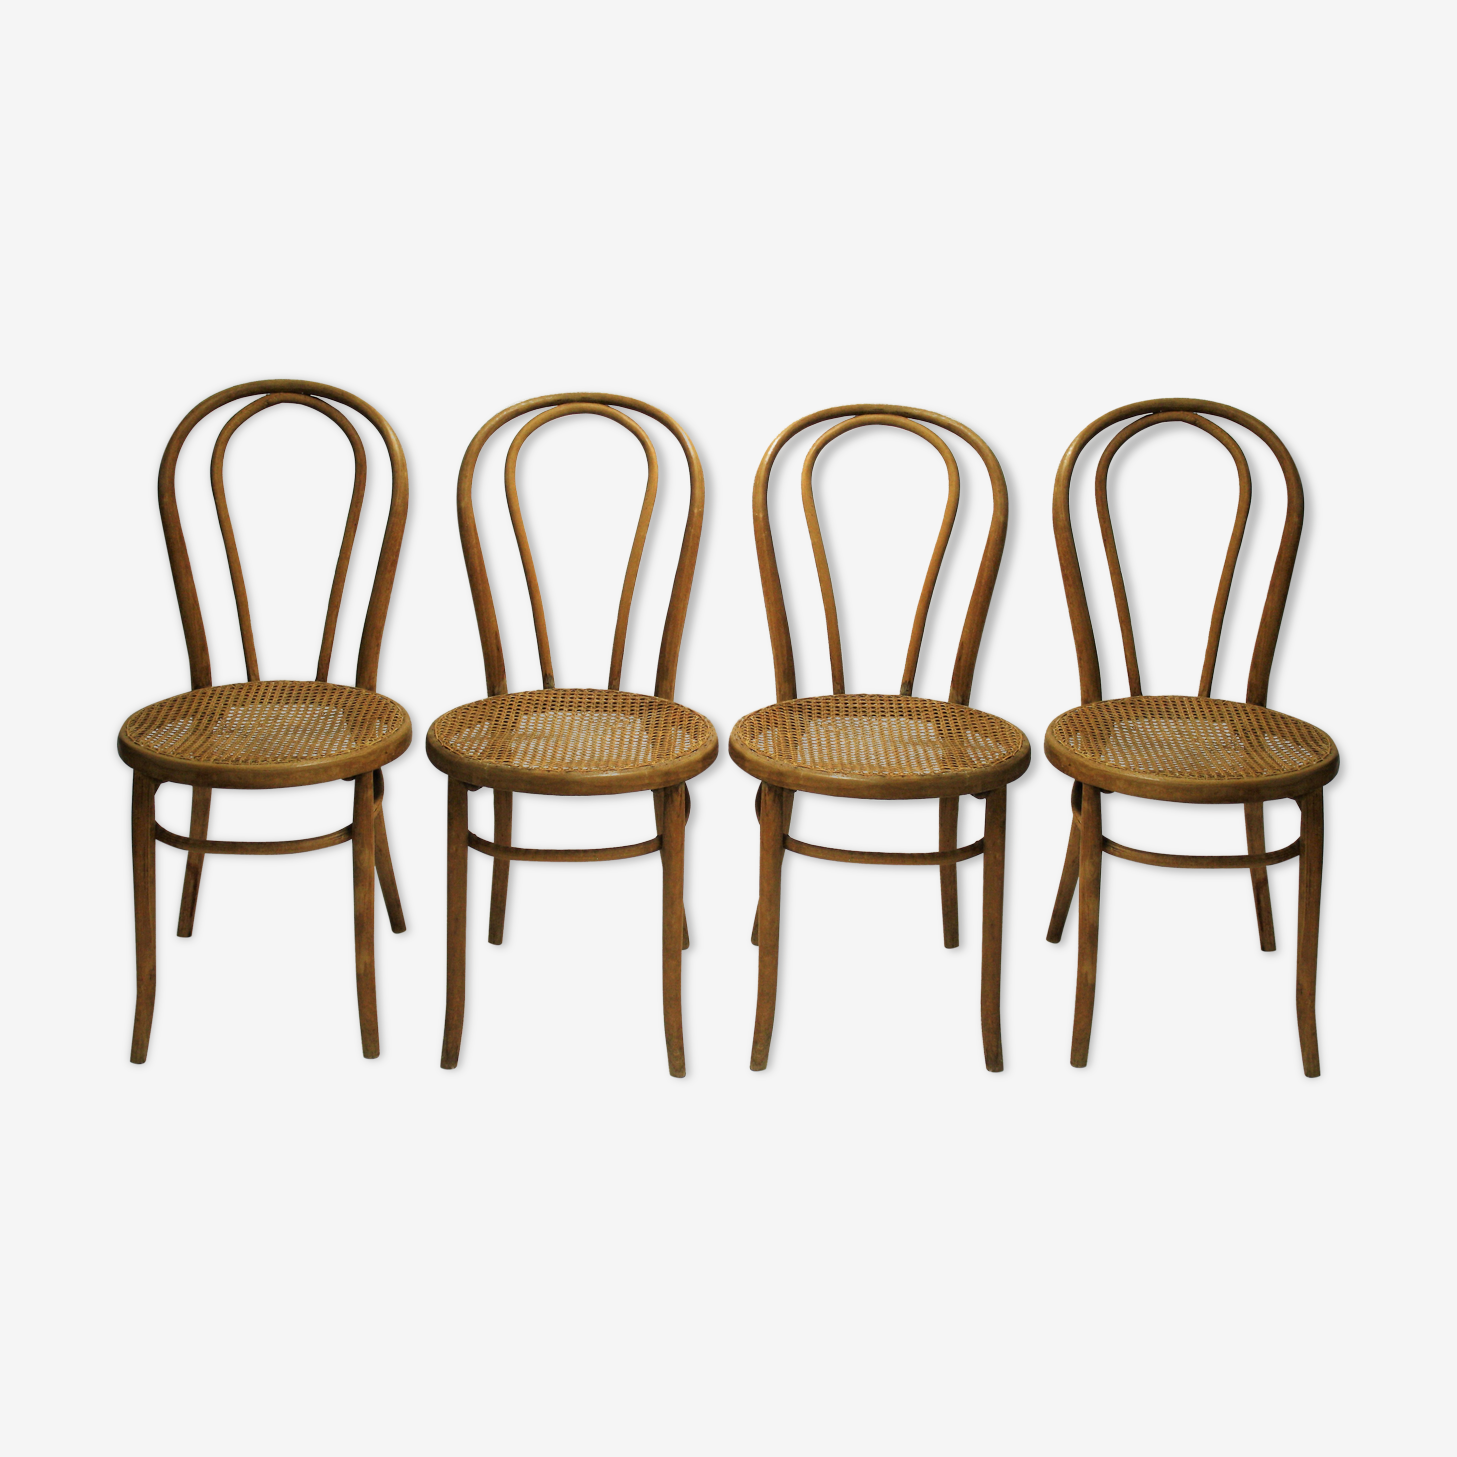 Thonet no 18 dining chairs, 1920